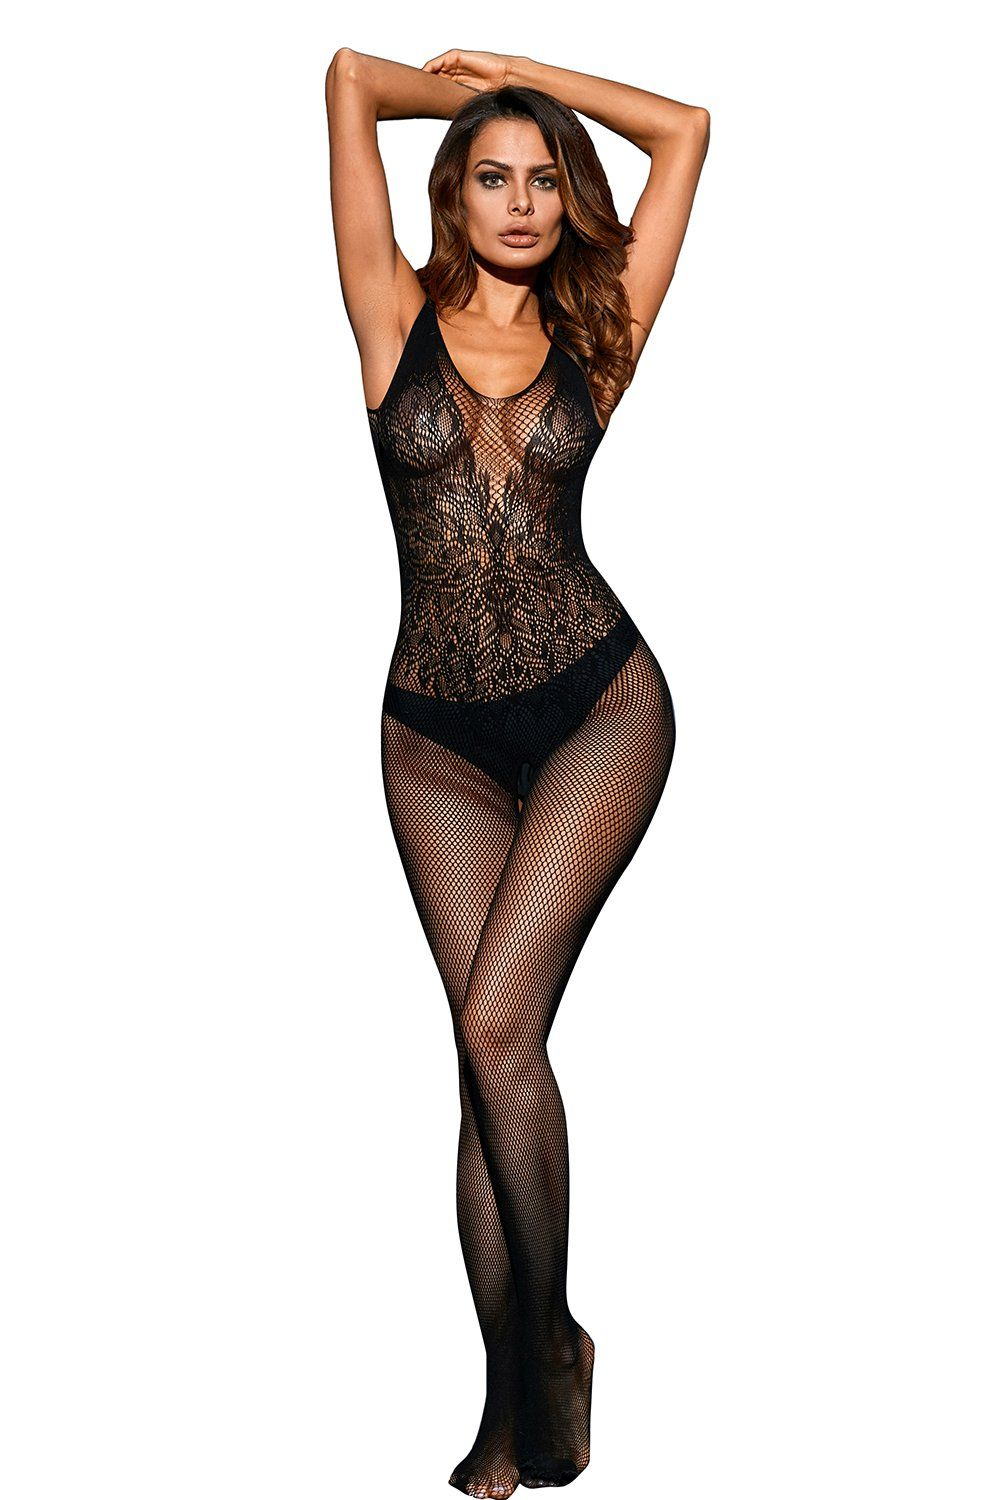 a6c2e188c6 Black Leavy Lace Seamless Mesh Body Stocking